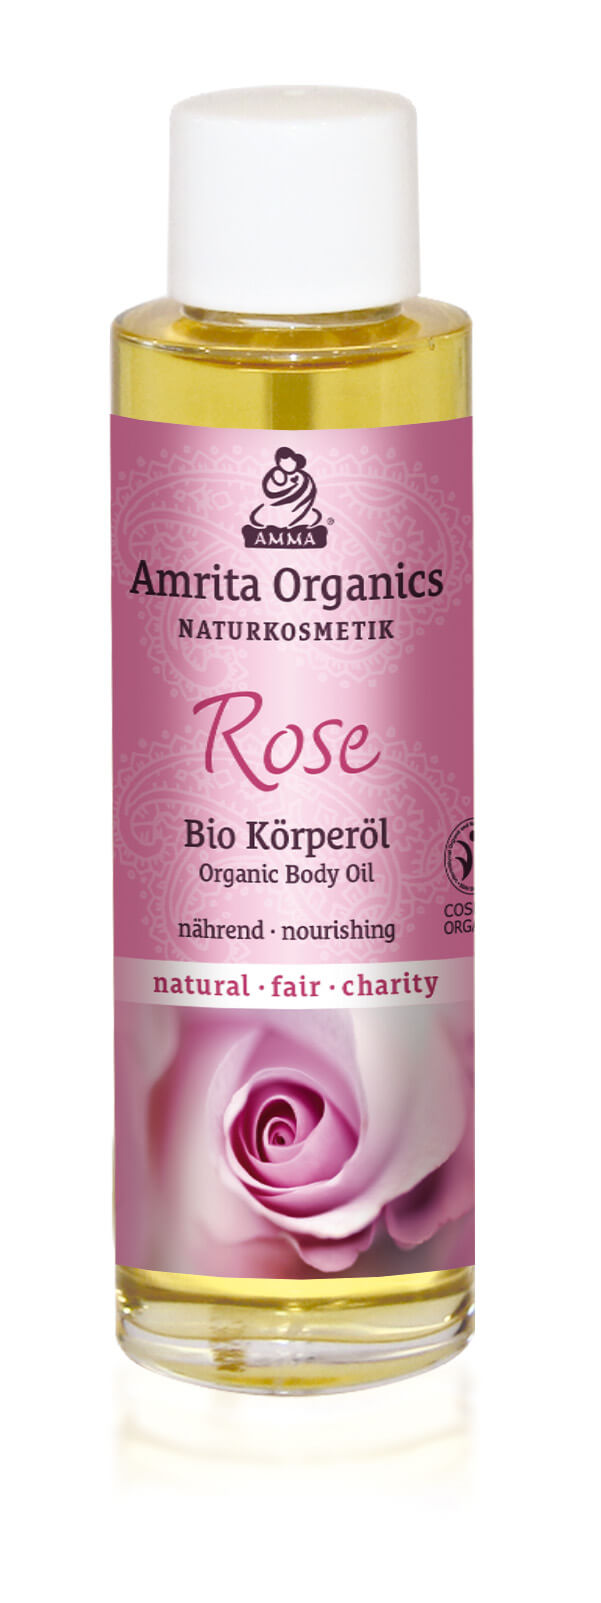 Body Oil Rose, organic